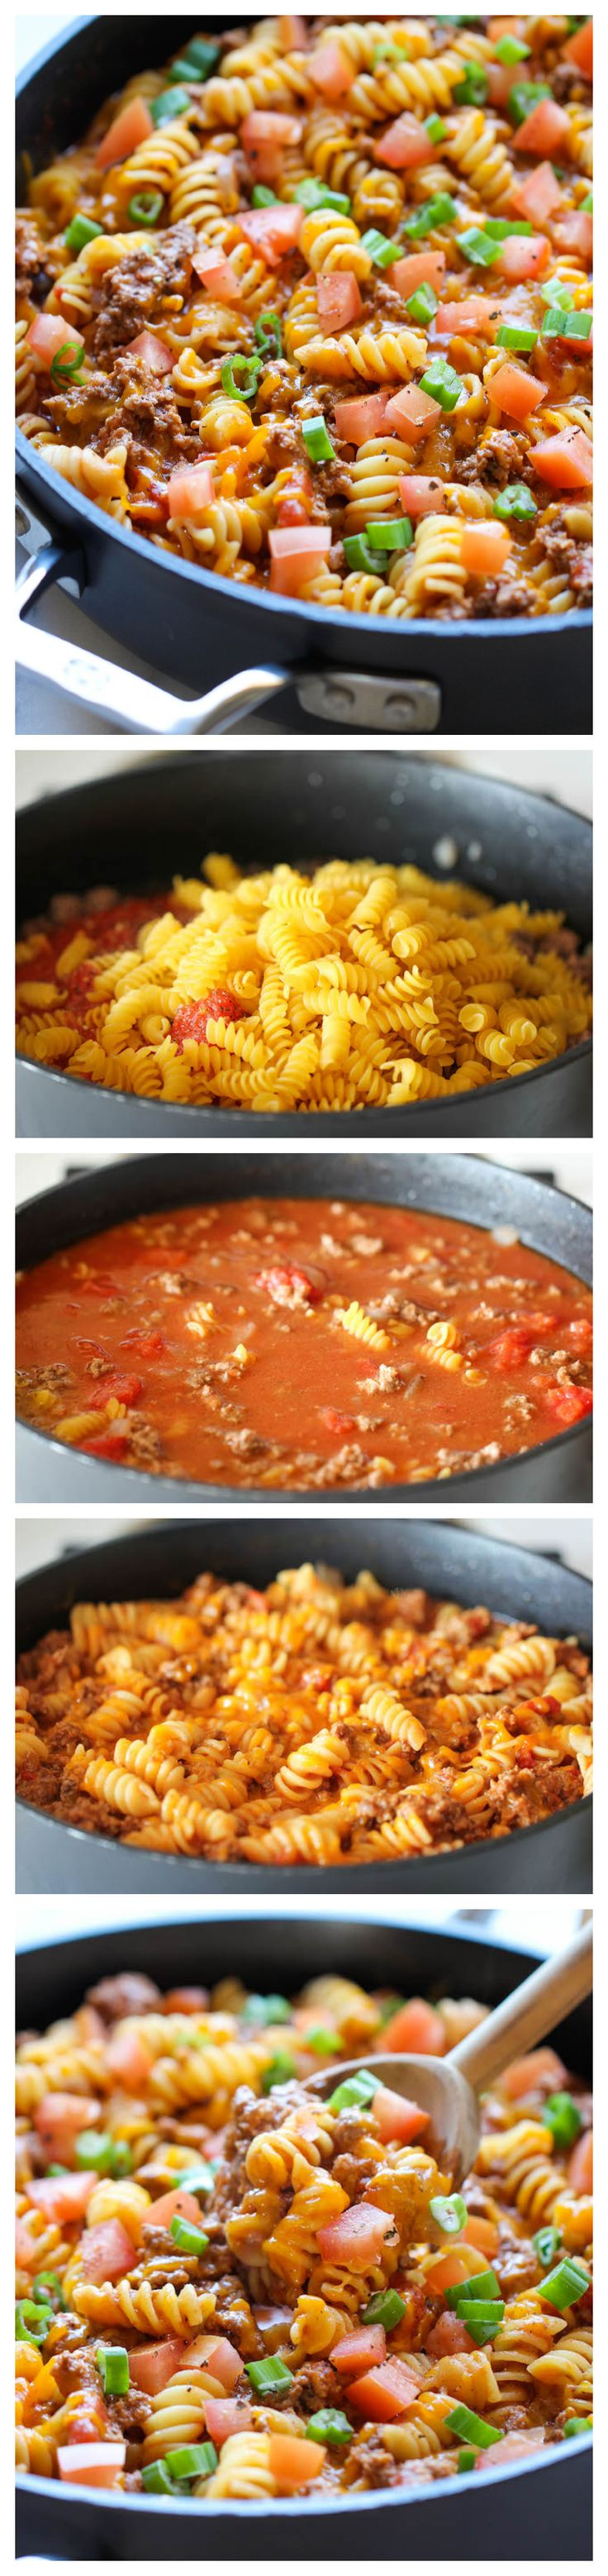 One Pot Cheeseburger Casserole - This cheesy goodness comes together so easily in one skillet. Even the pasta gets cooked right in the pan!